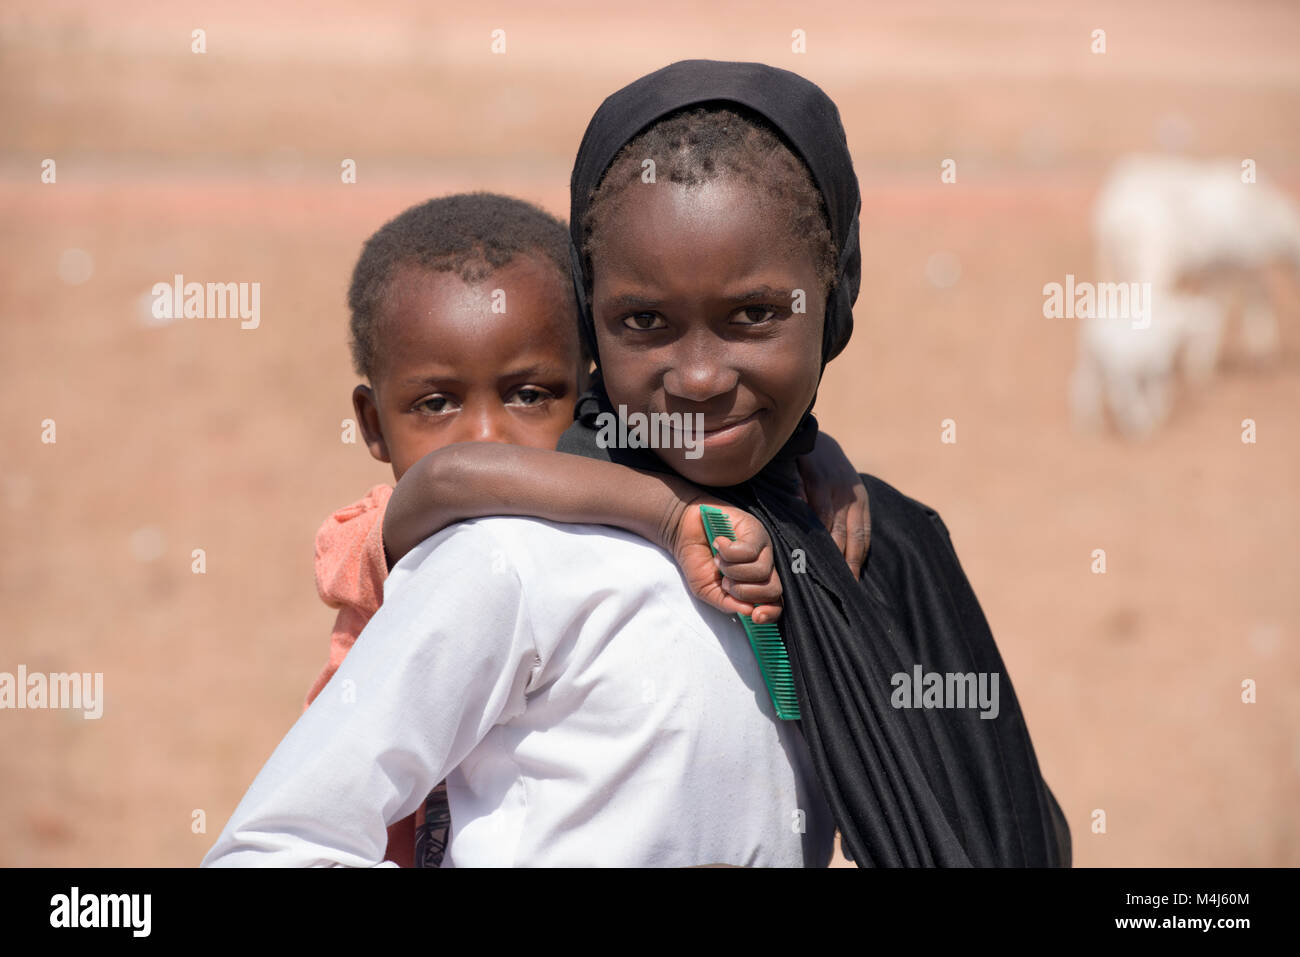 An indigenous Mandingo (Mandinka) girl carrying a young boy in an isolated village in The Gambia, West Africa. - Stock Image